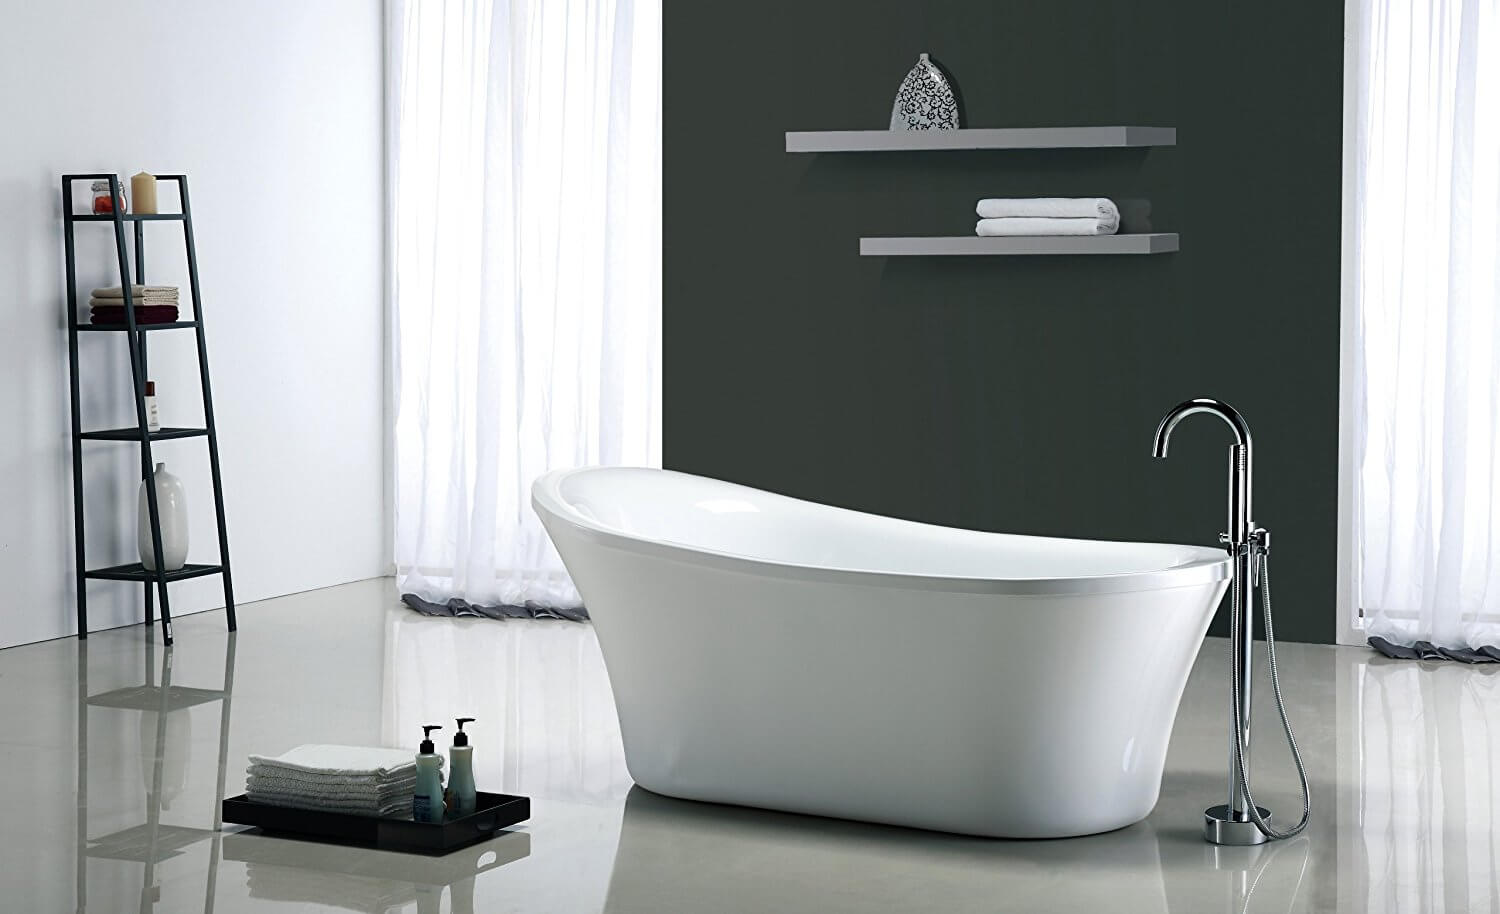 Updated] Best Acrylic Bathtub 2018 | Reviews and Guide